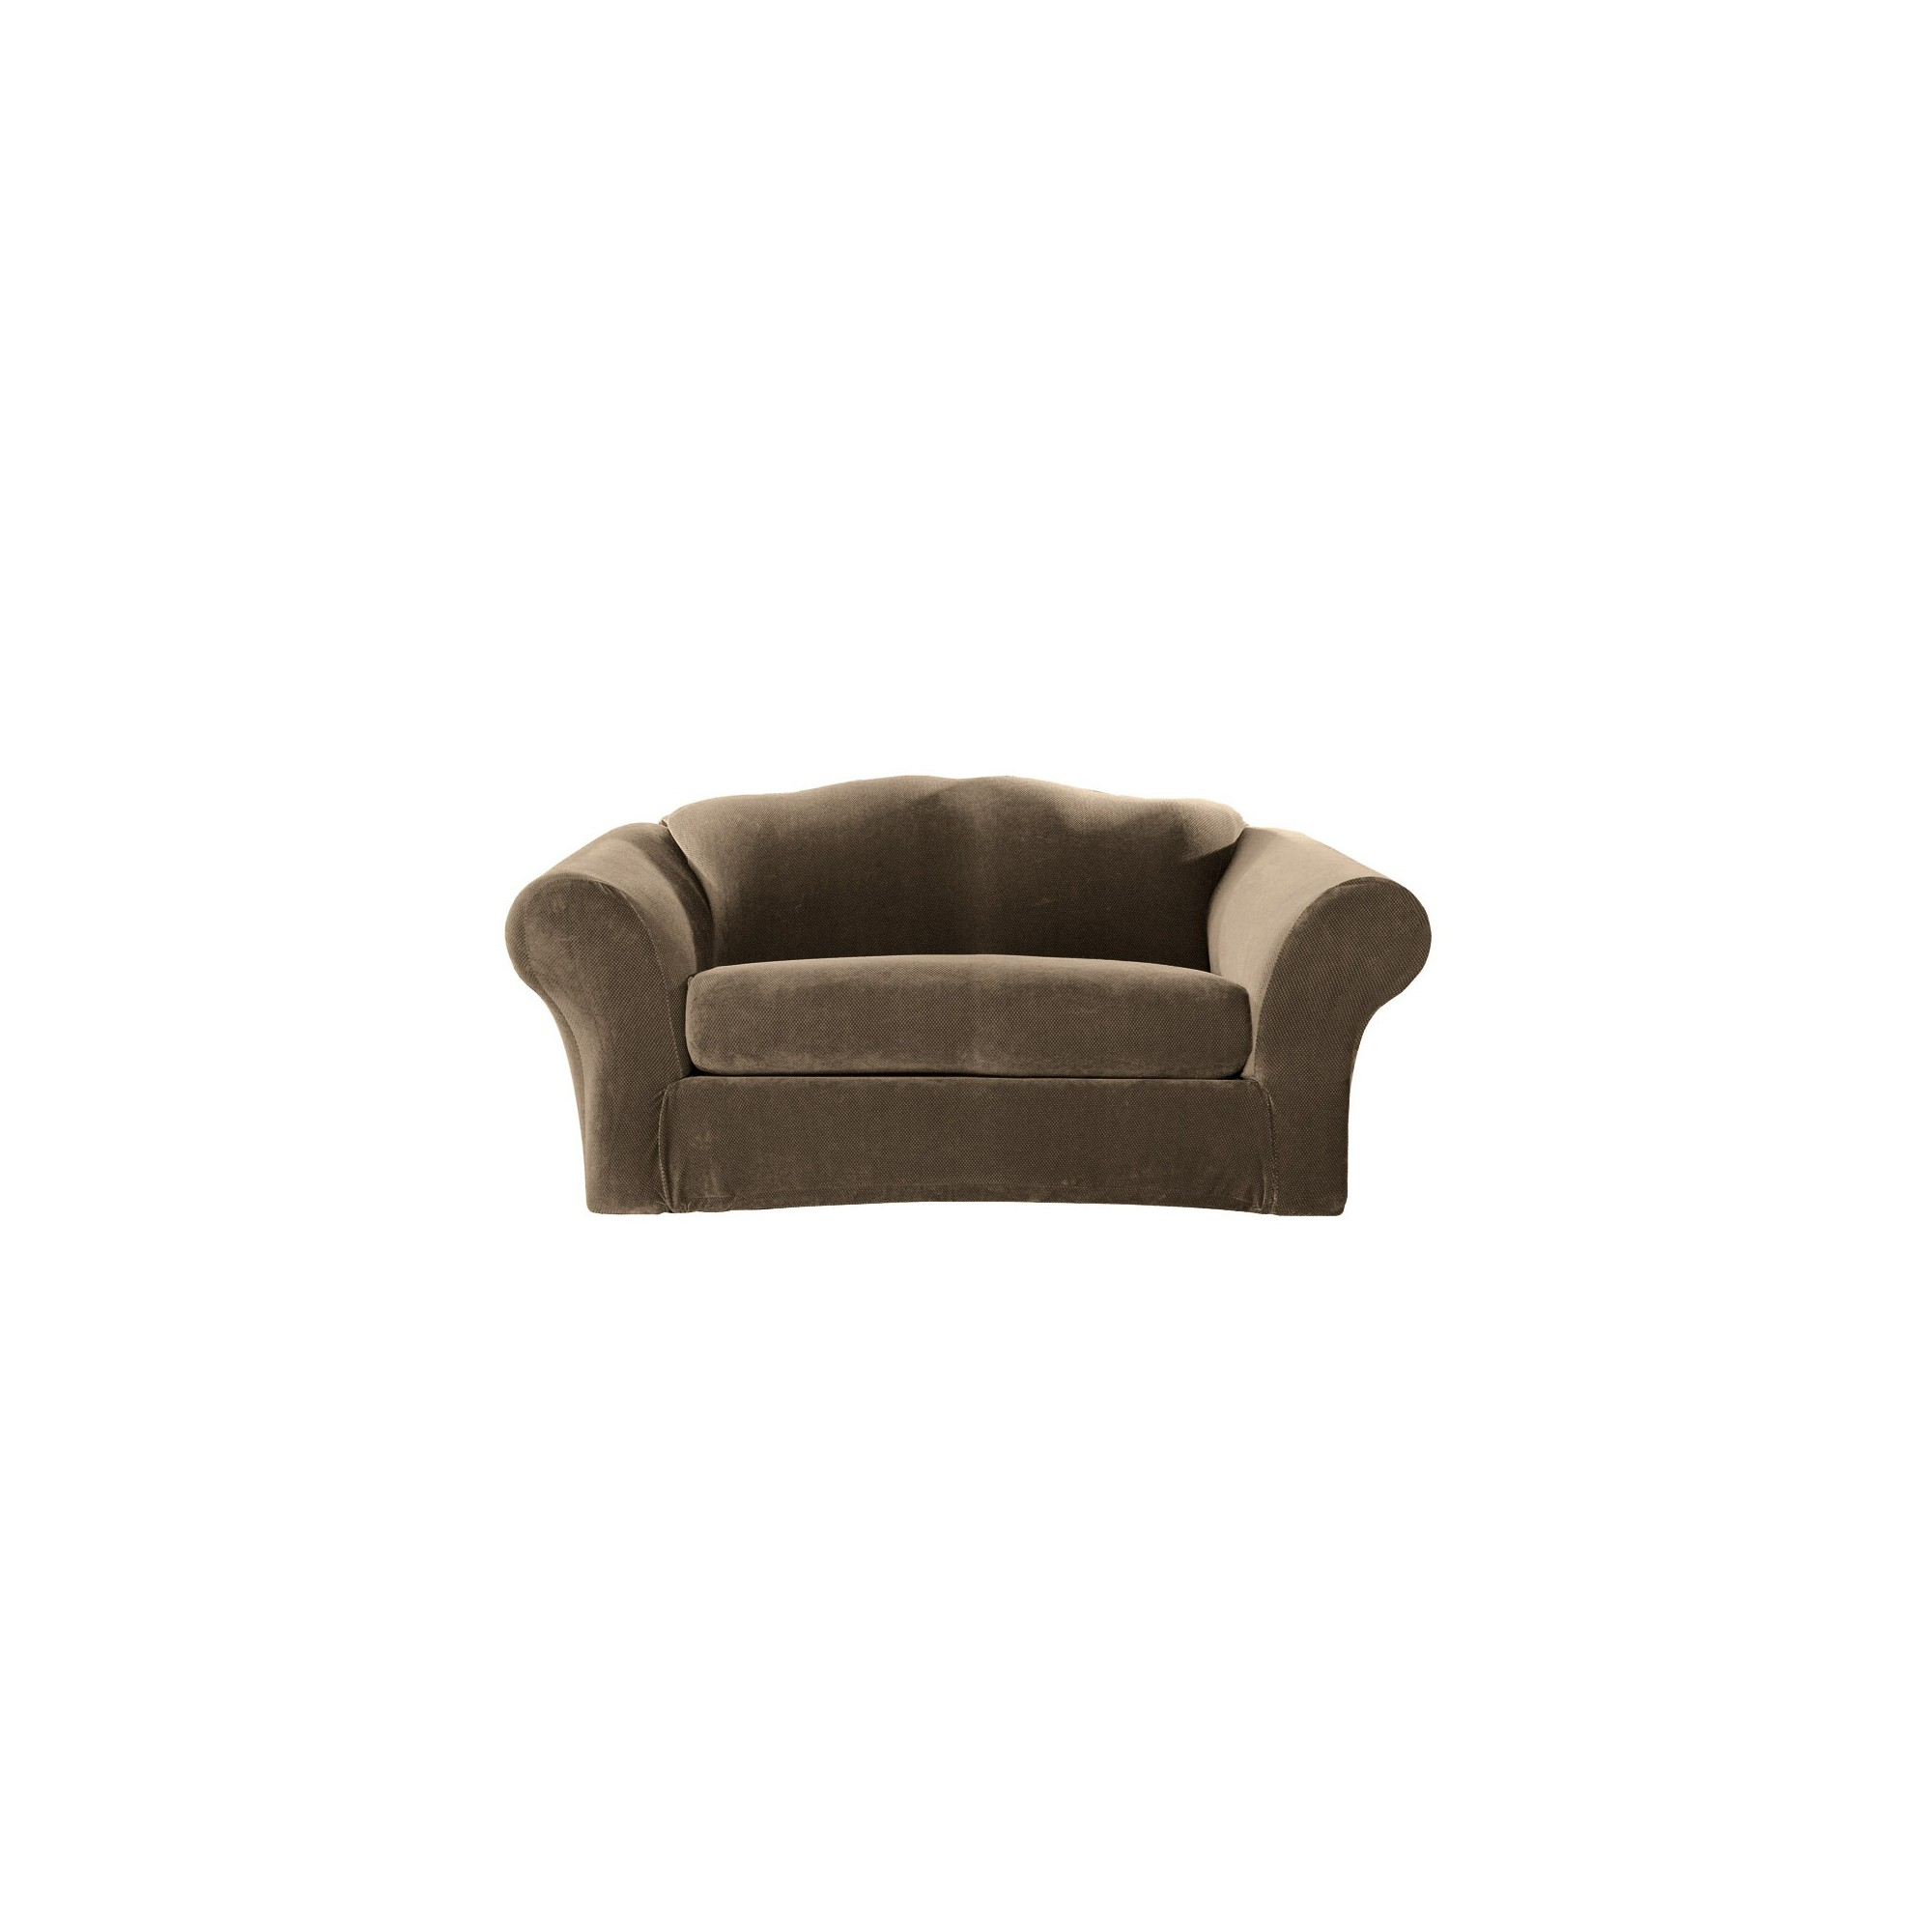 Stretch Pique 2 Piece Sofa Slipcover Taupe - Sure Fit, Brown